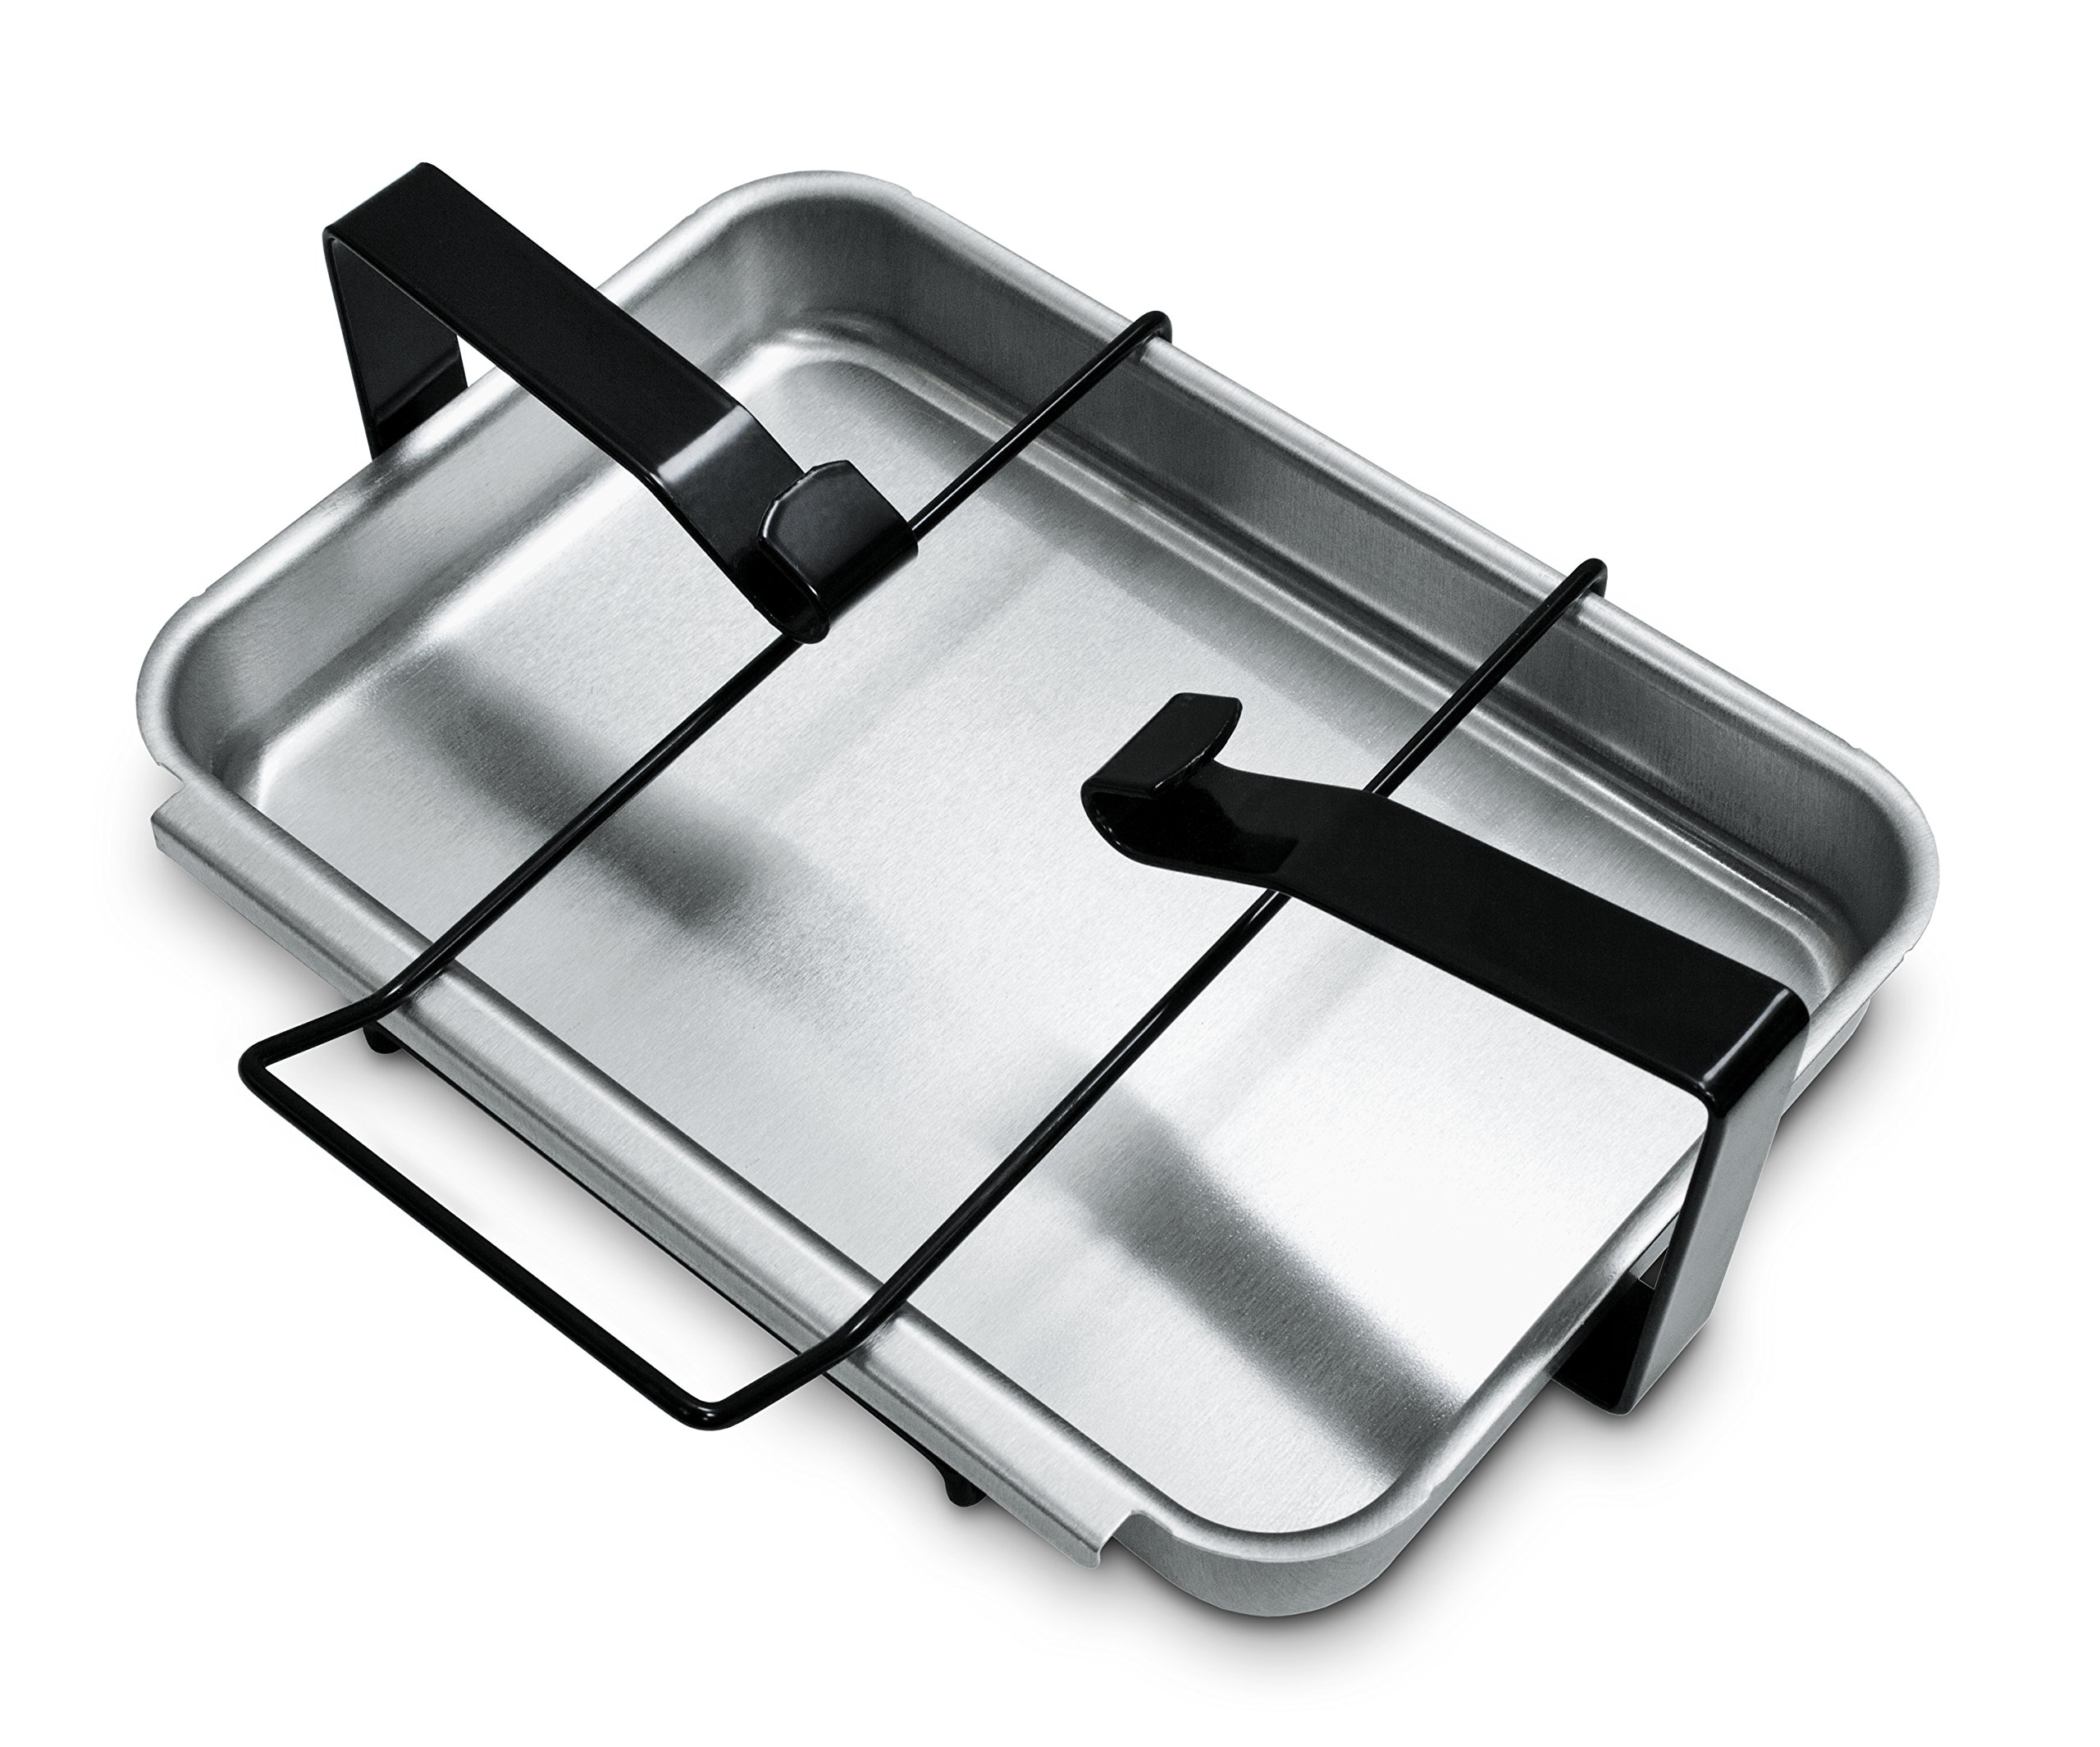 Weber 7515 Catch Pan and Holder by Weber